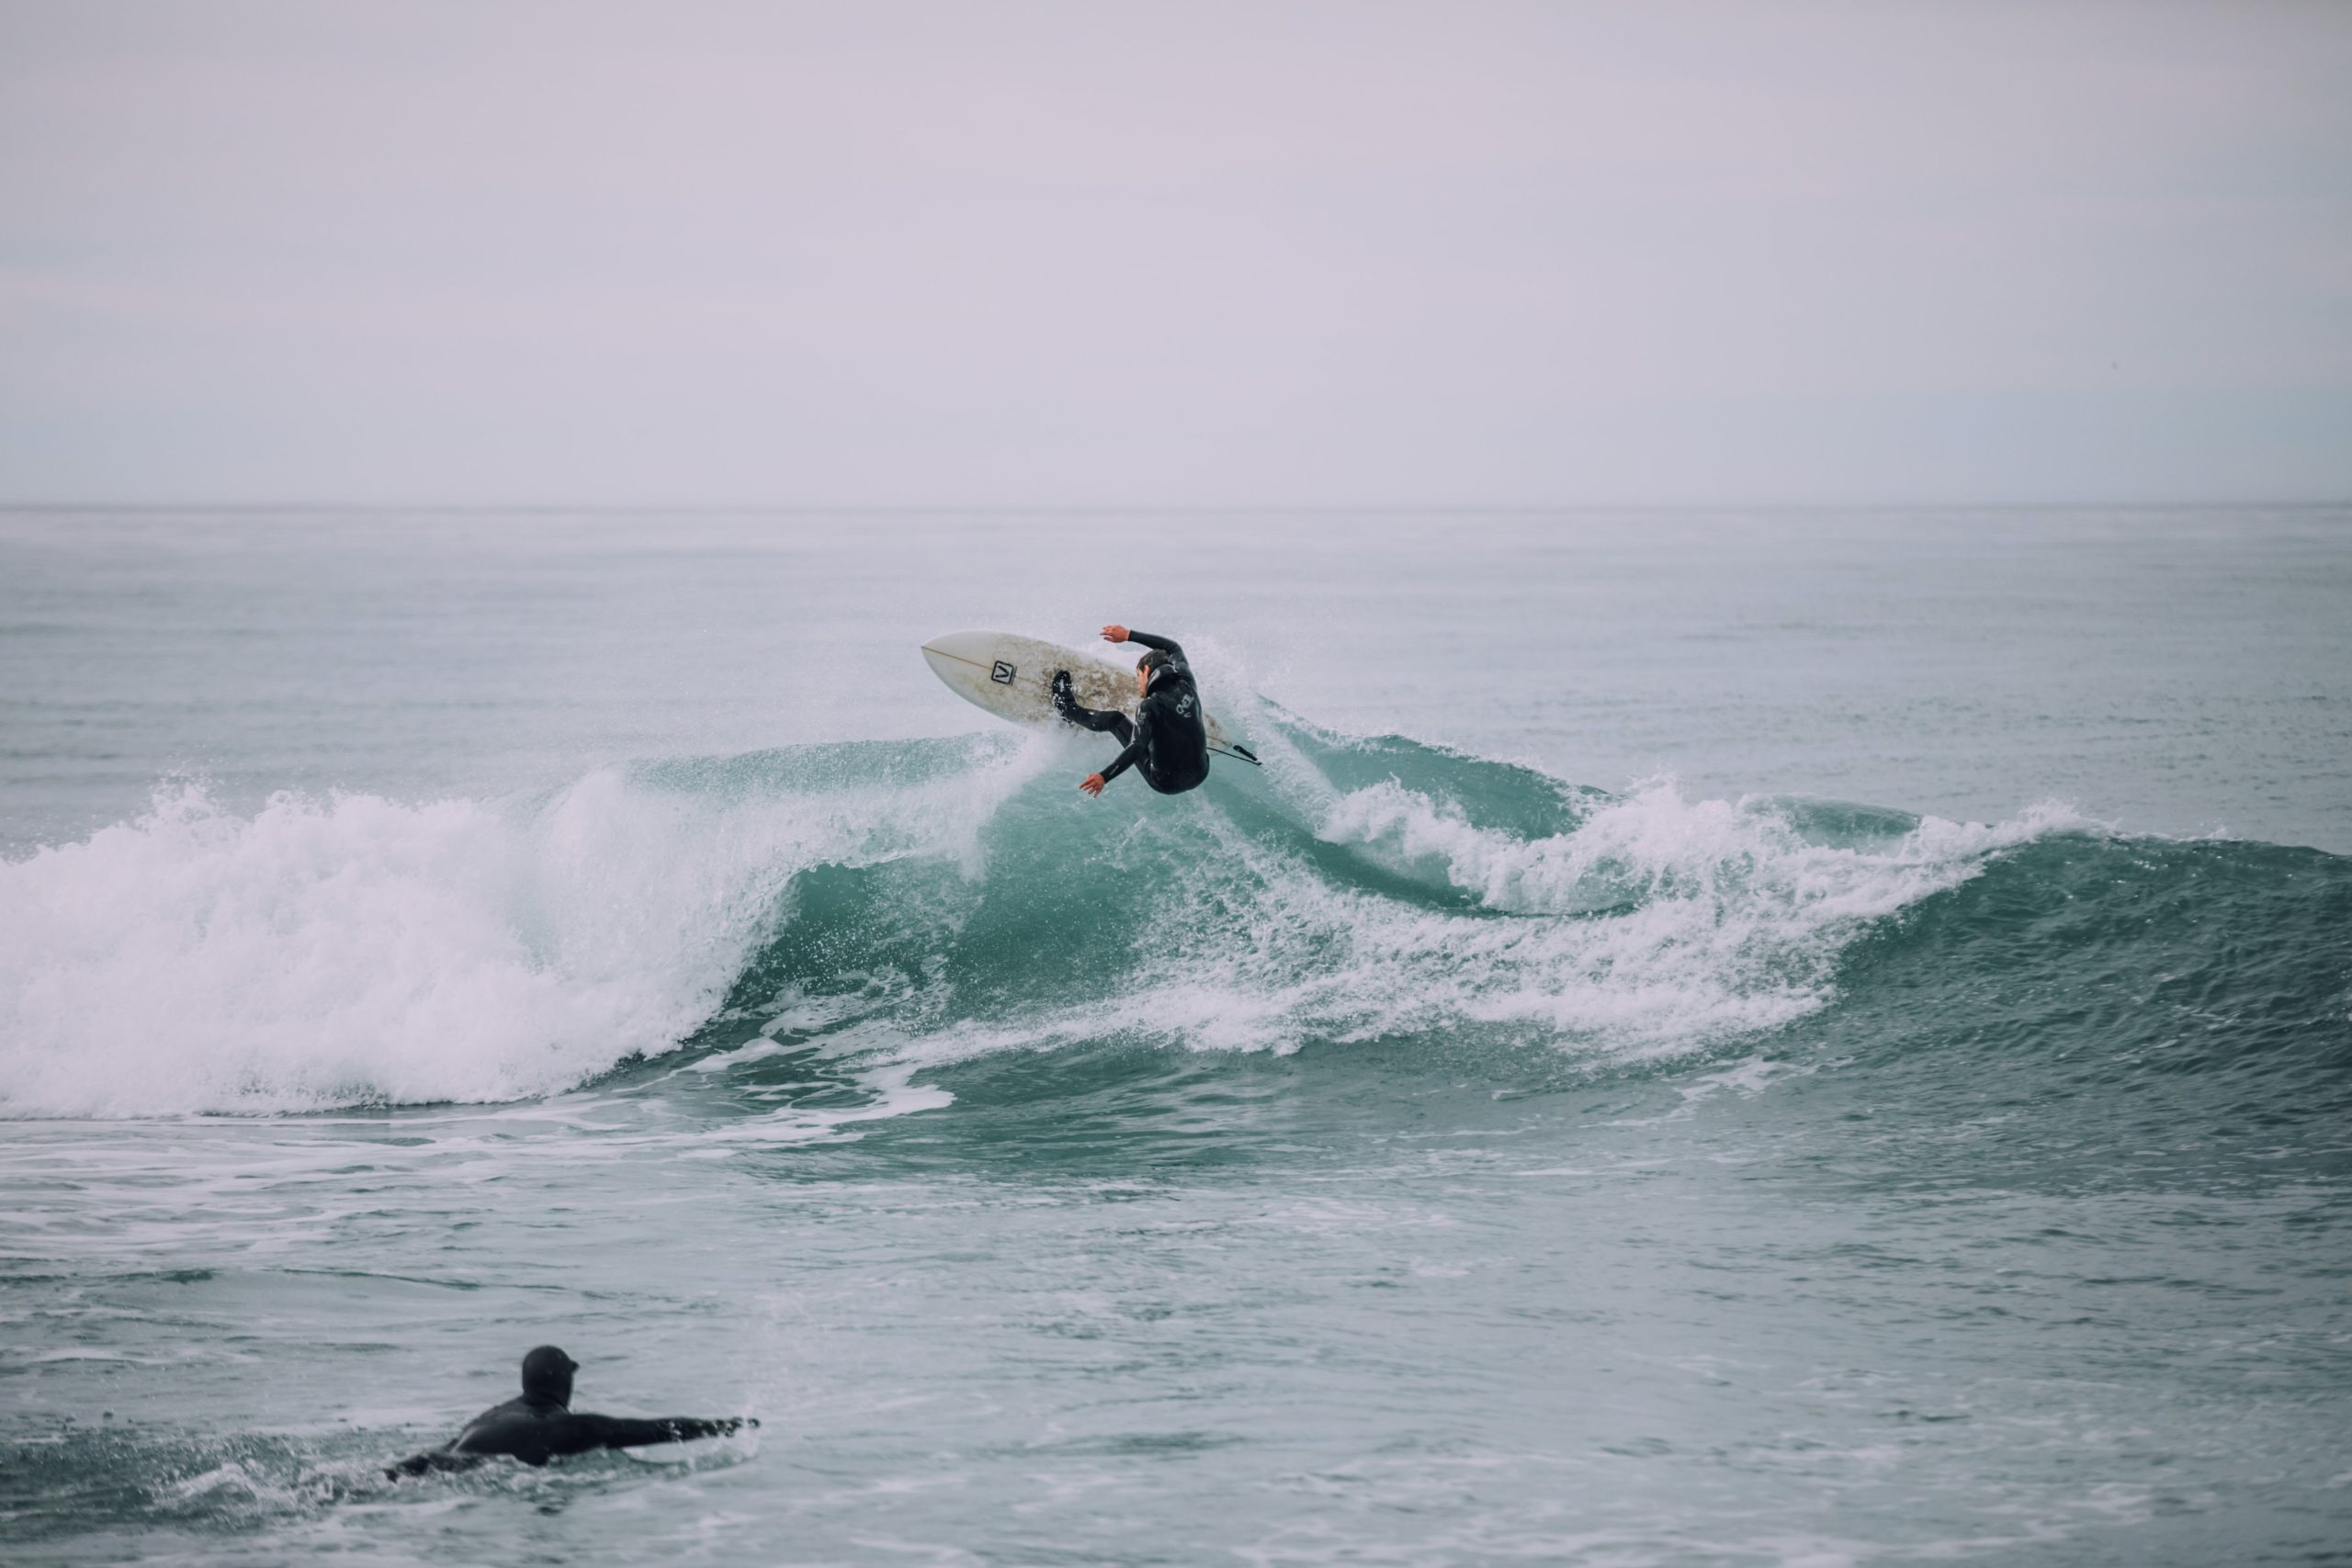 Surfing Lessons - How To Get Started With Surfing Level